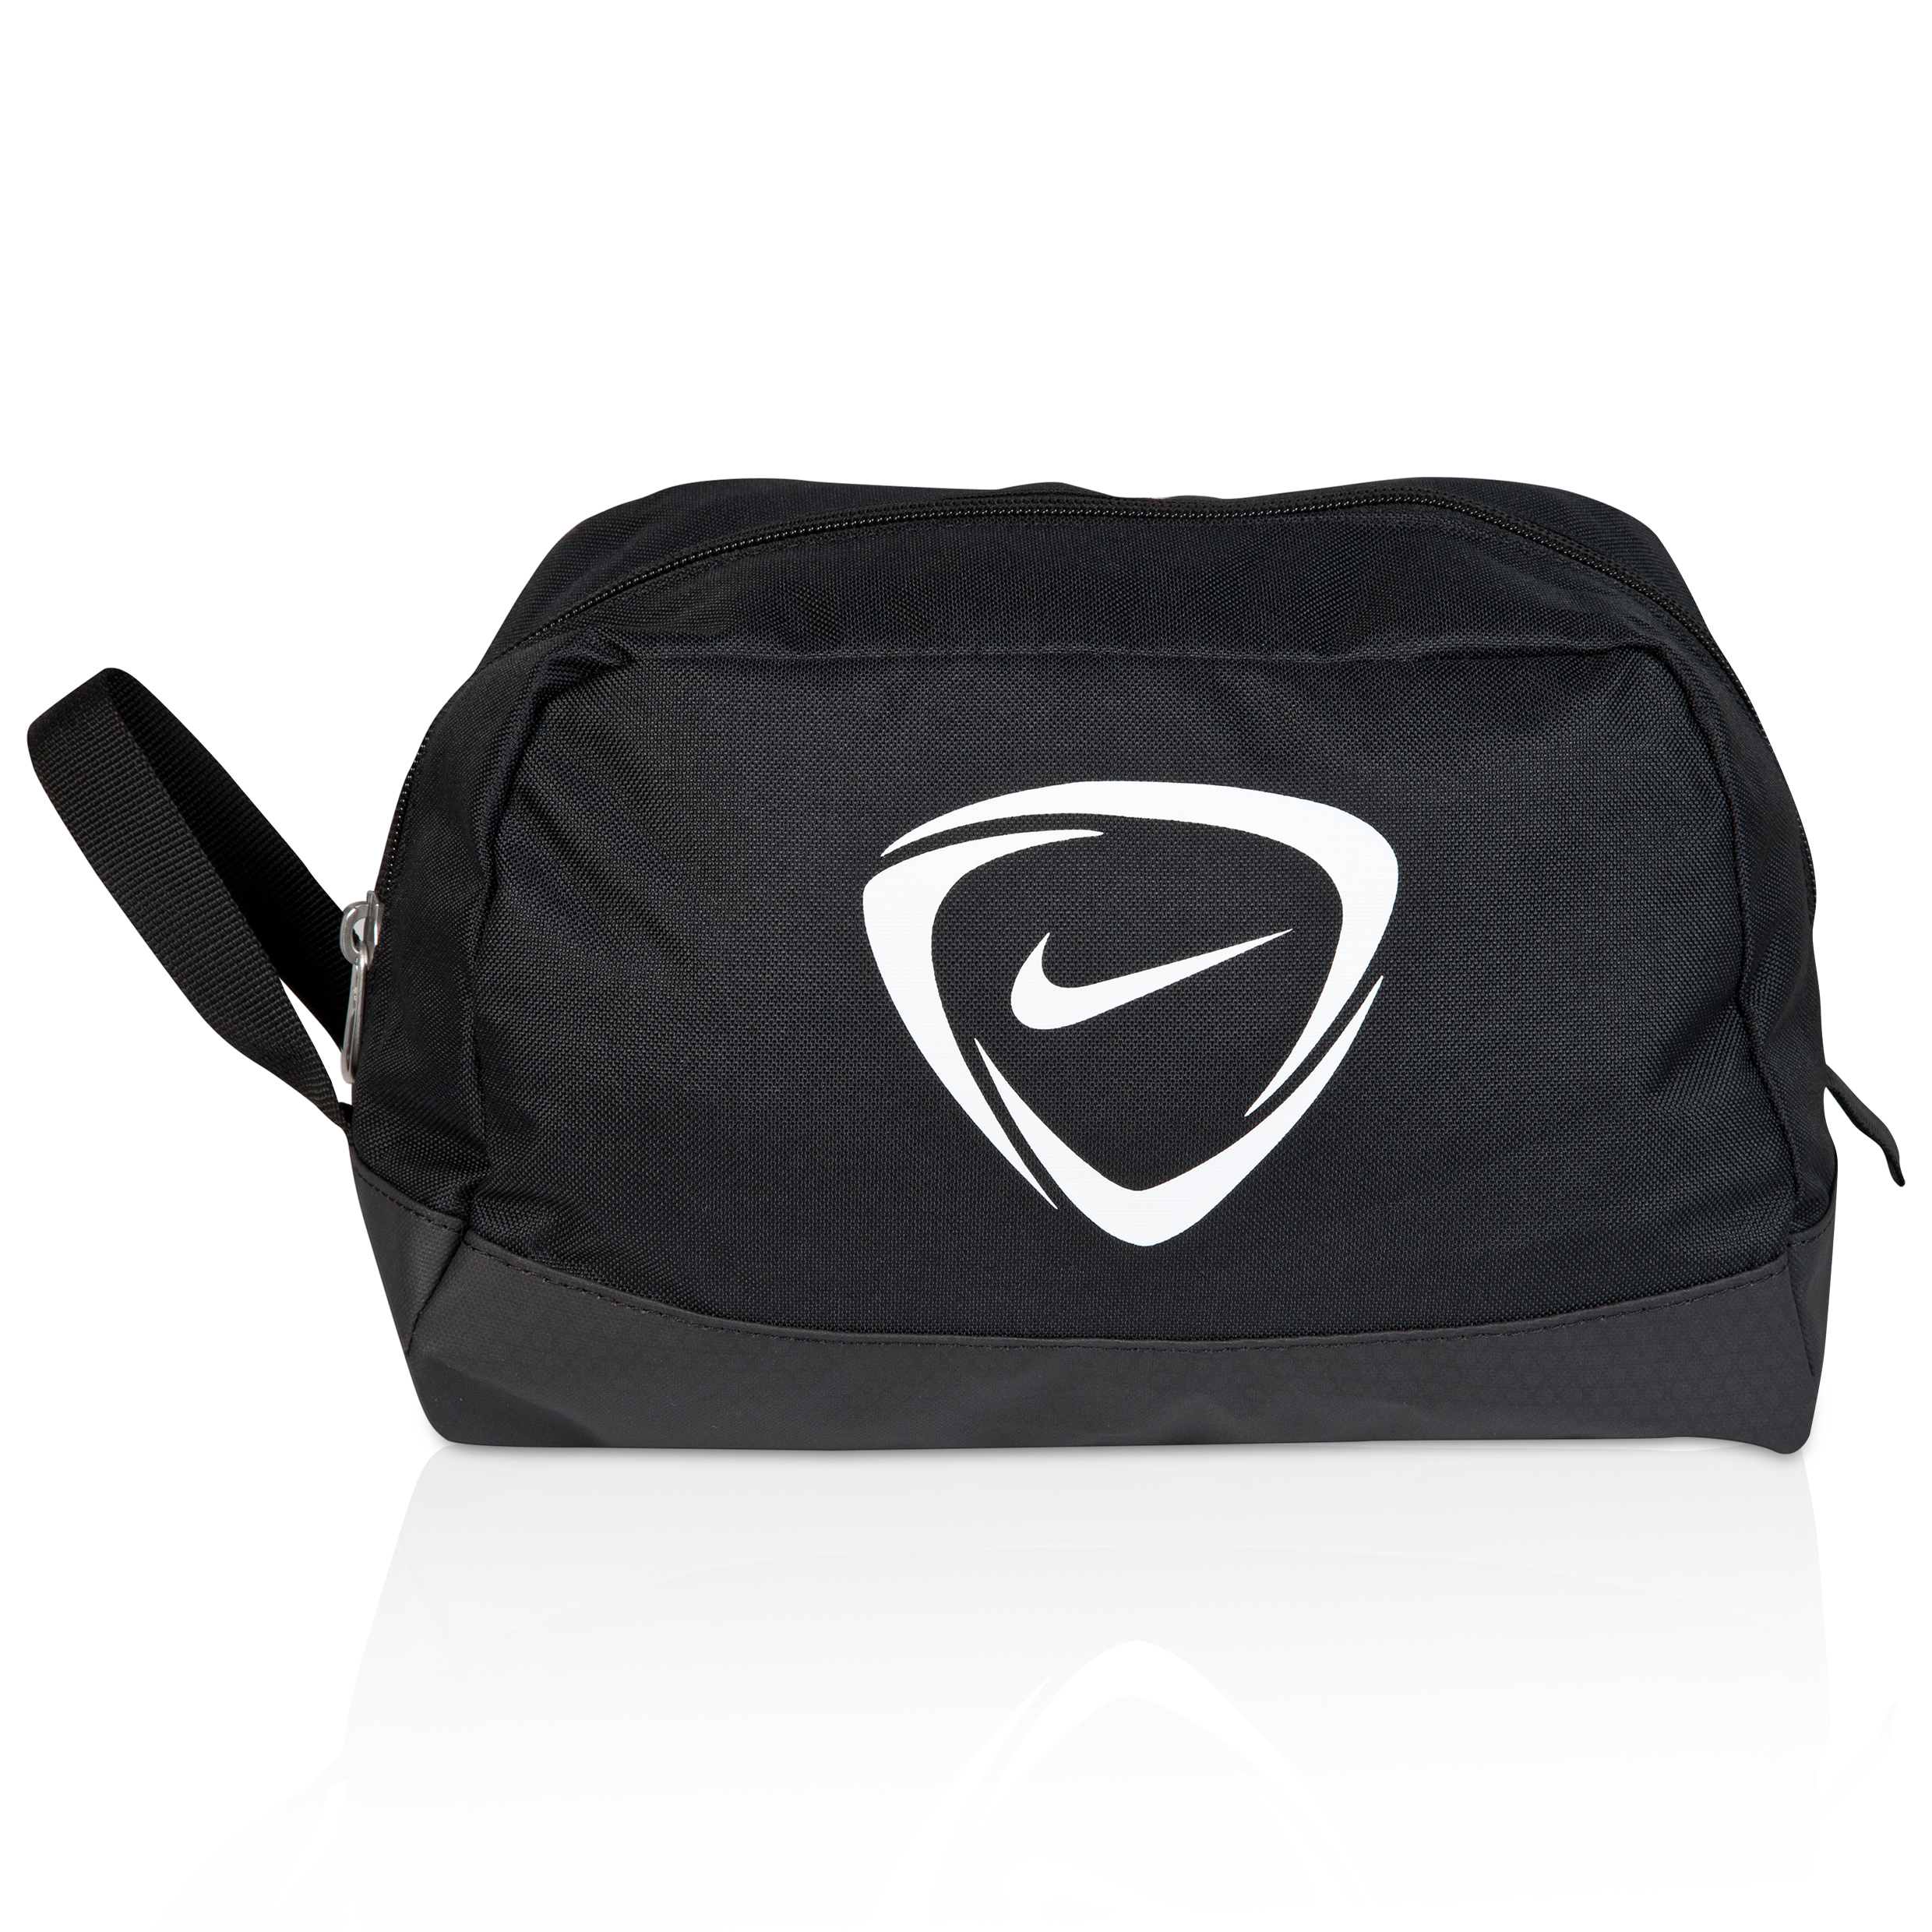 Nike Club Team Toiletry Bag Black